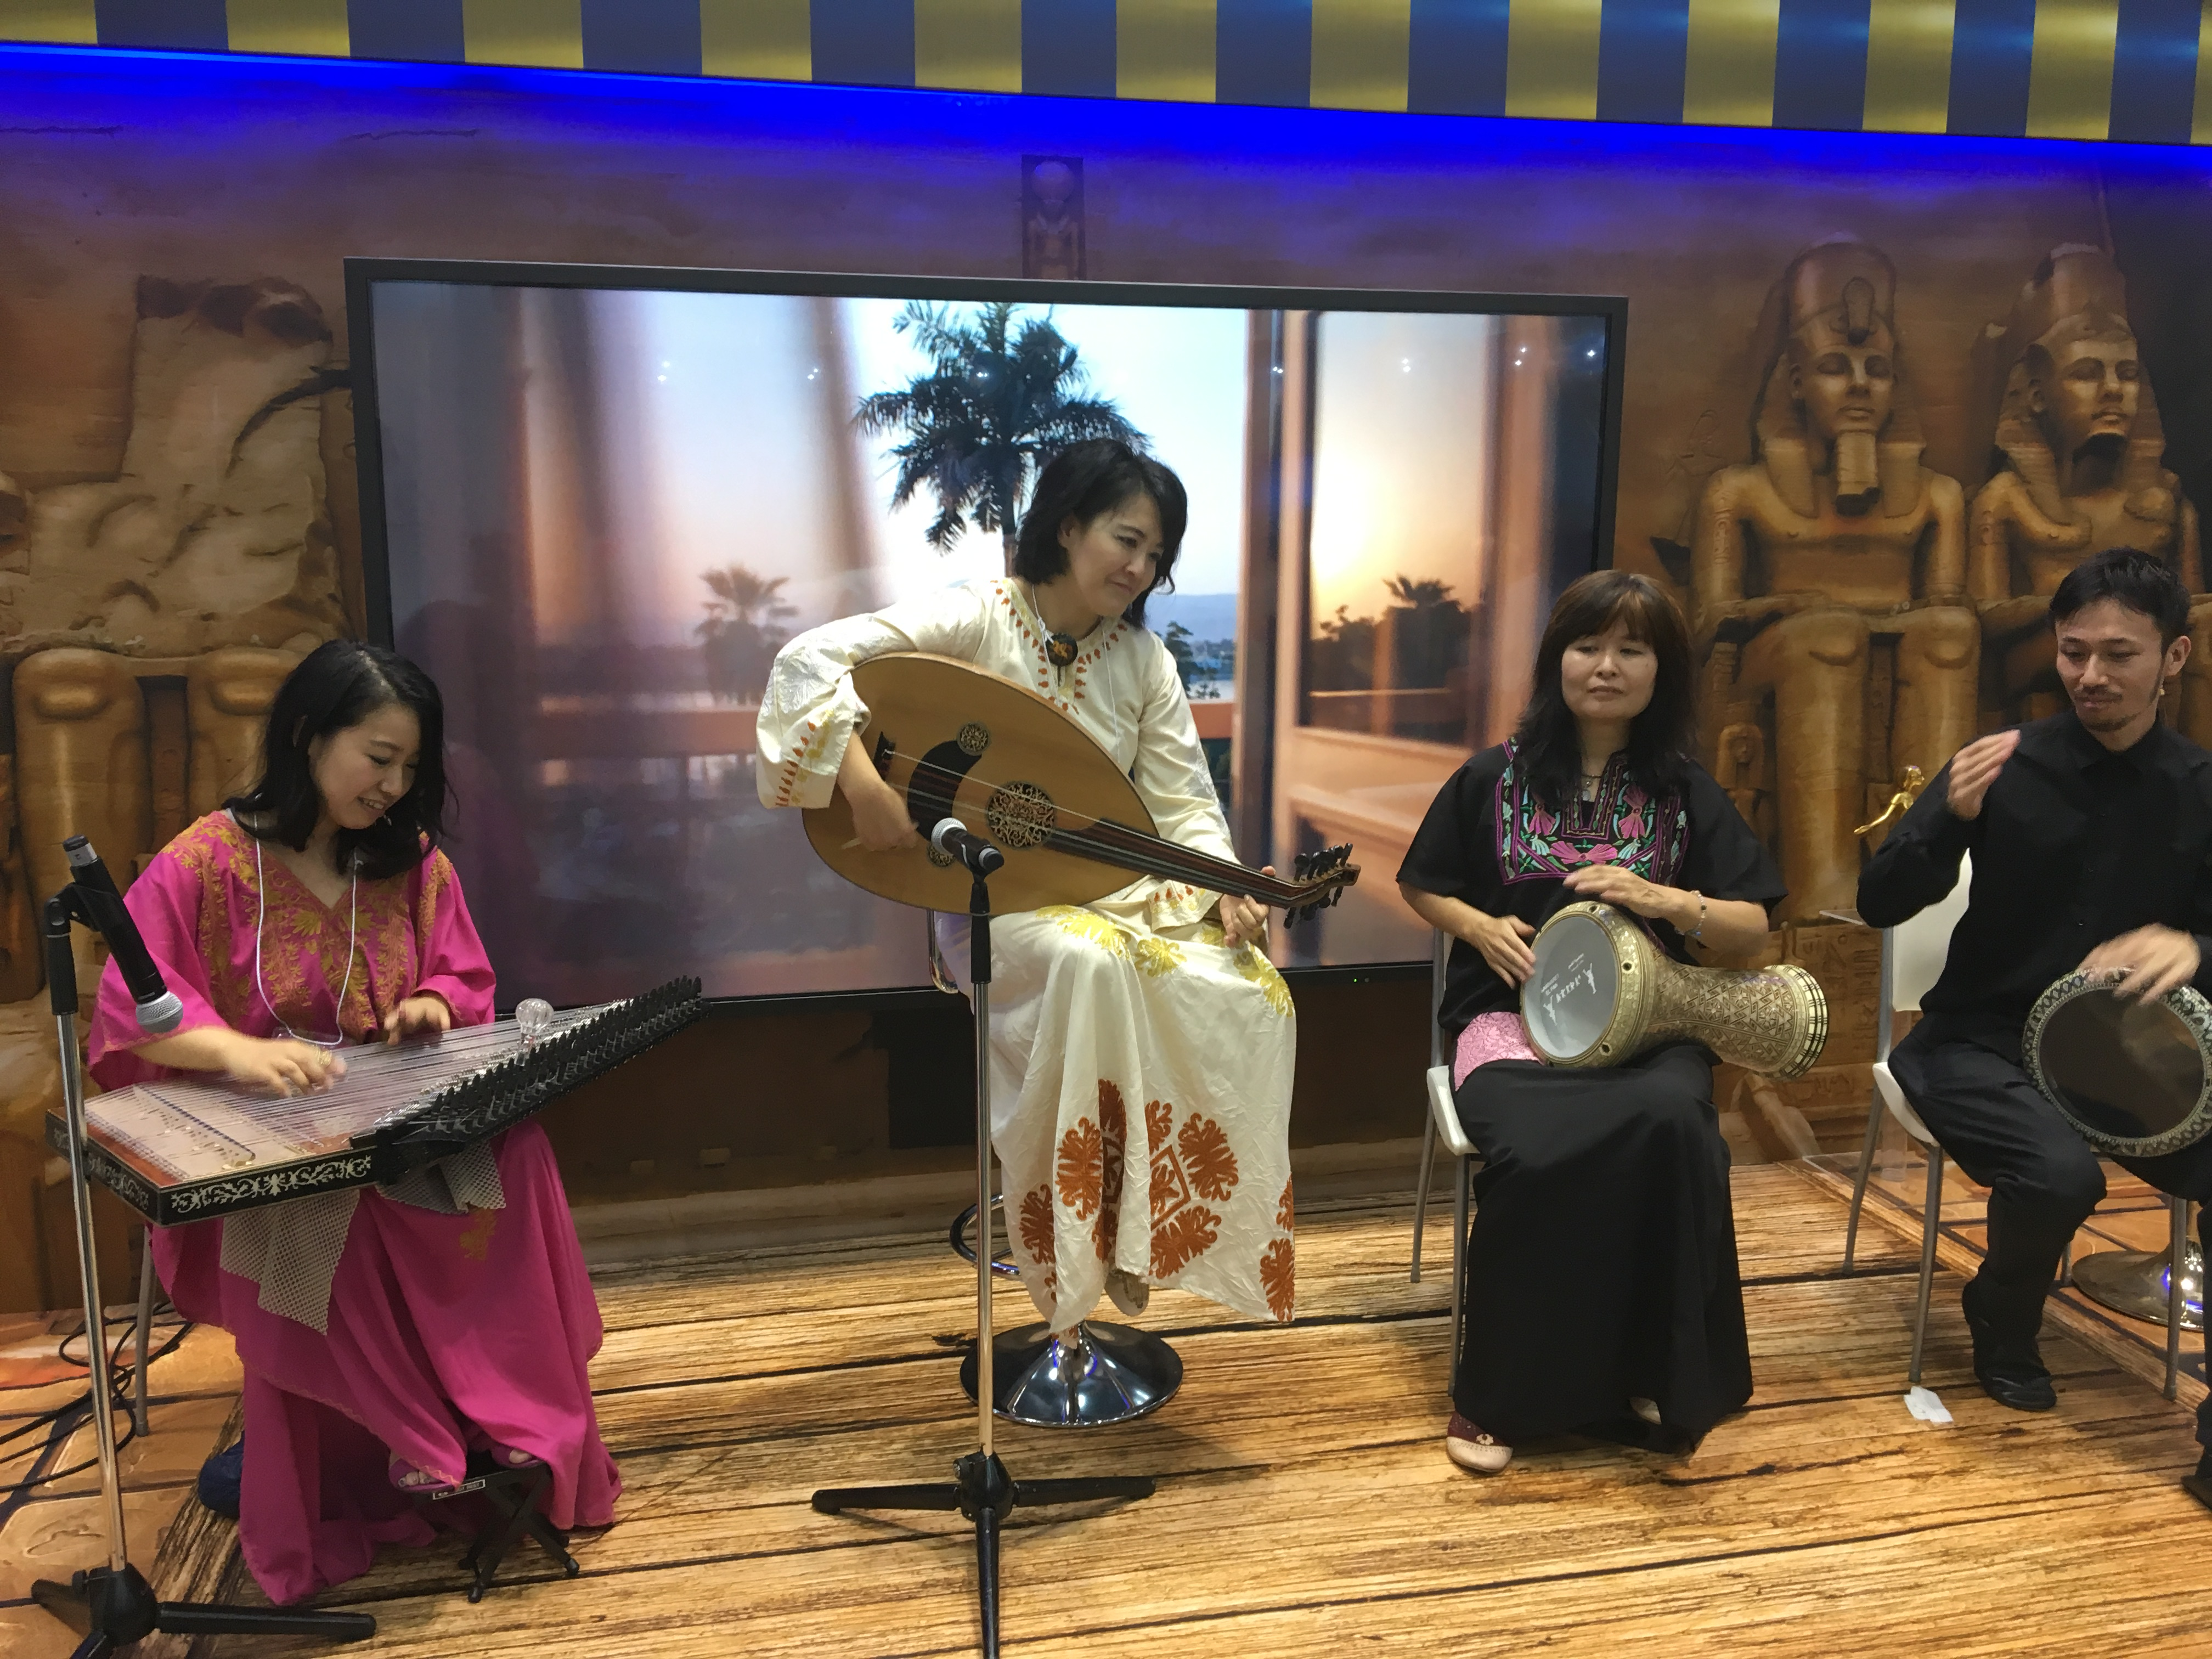 Oriental Music show during the Travel Trade fair in Japan